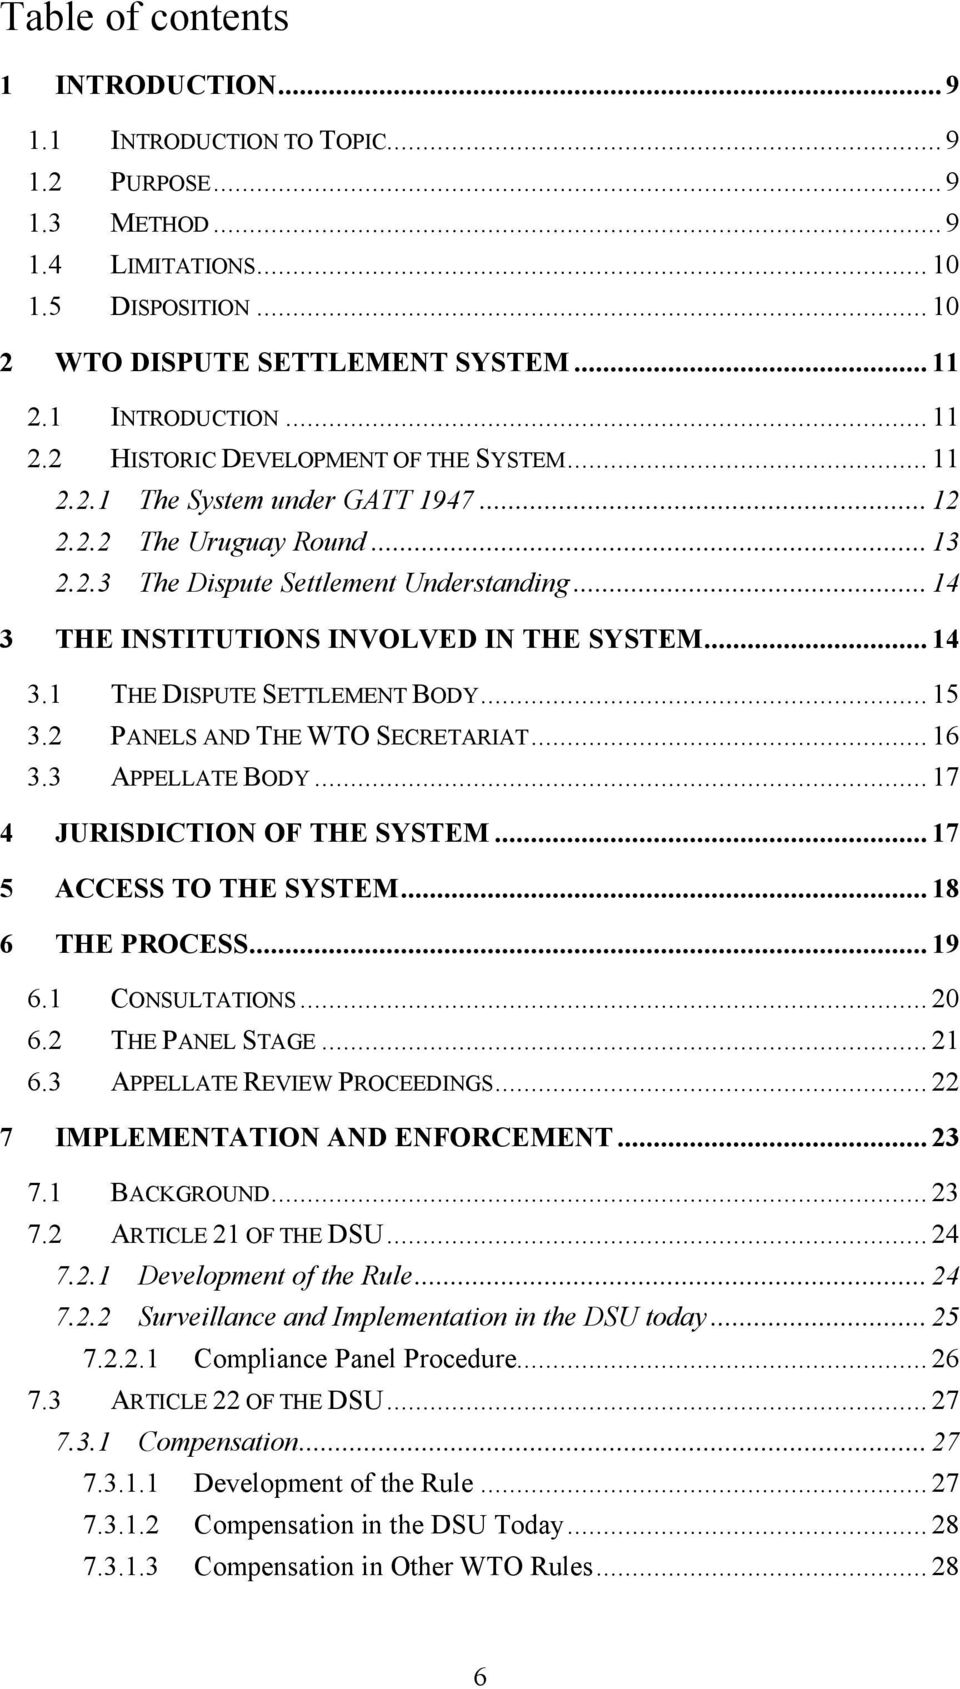 .. 14 3 THE INSTITUTIONS INVOLVED IN THE SYSTEM... 14 3.1 THE DISPUTE SETTLEMENT BODY... 15 3.2 PANELS AND THE WTO SECRETARIAT... 16 3.3 APPELLATE BODY... 17 4 JURISDICTION OF THE SYSTEM.